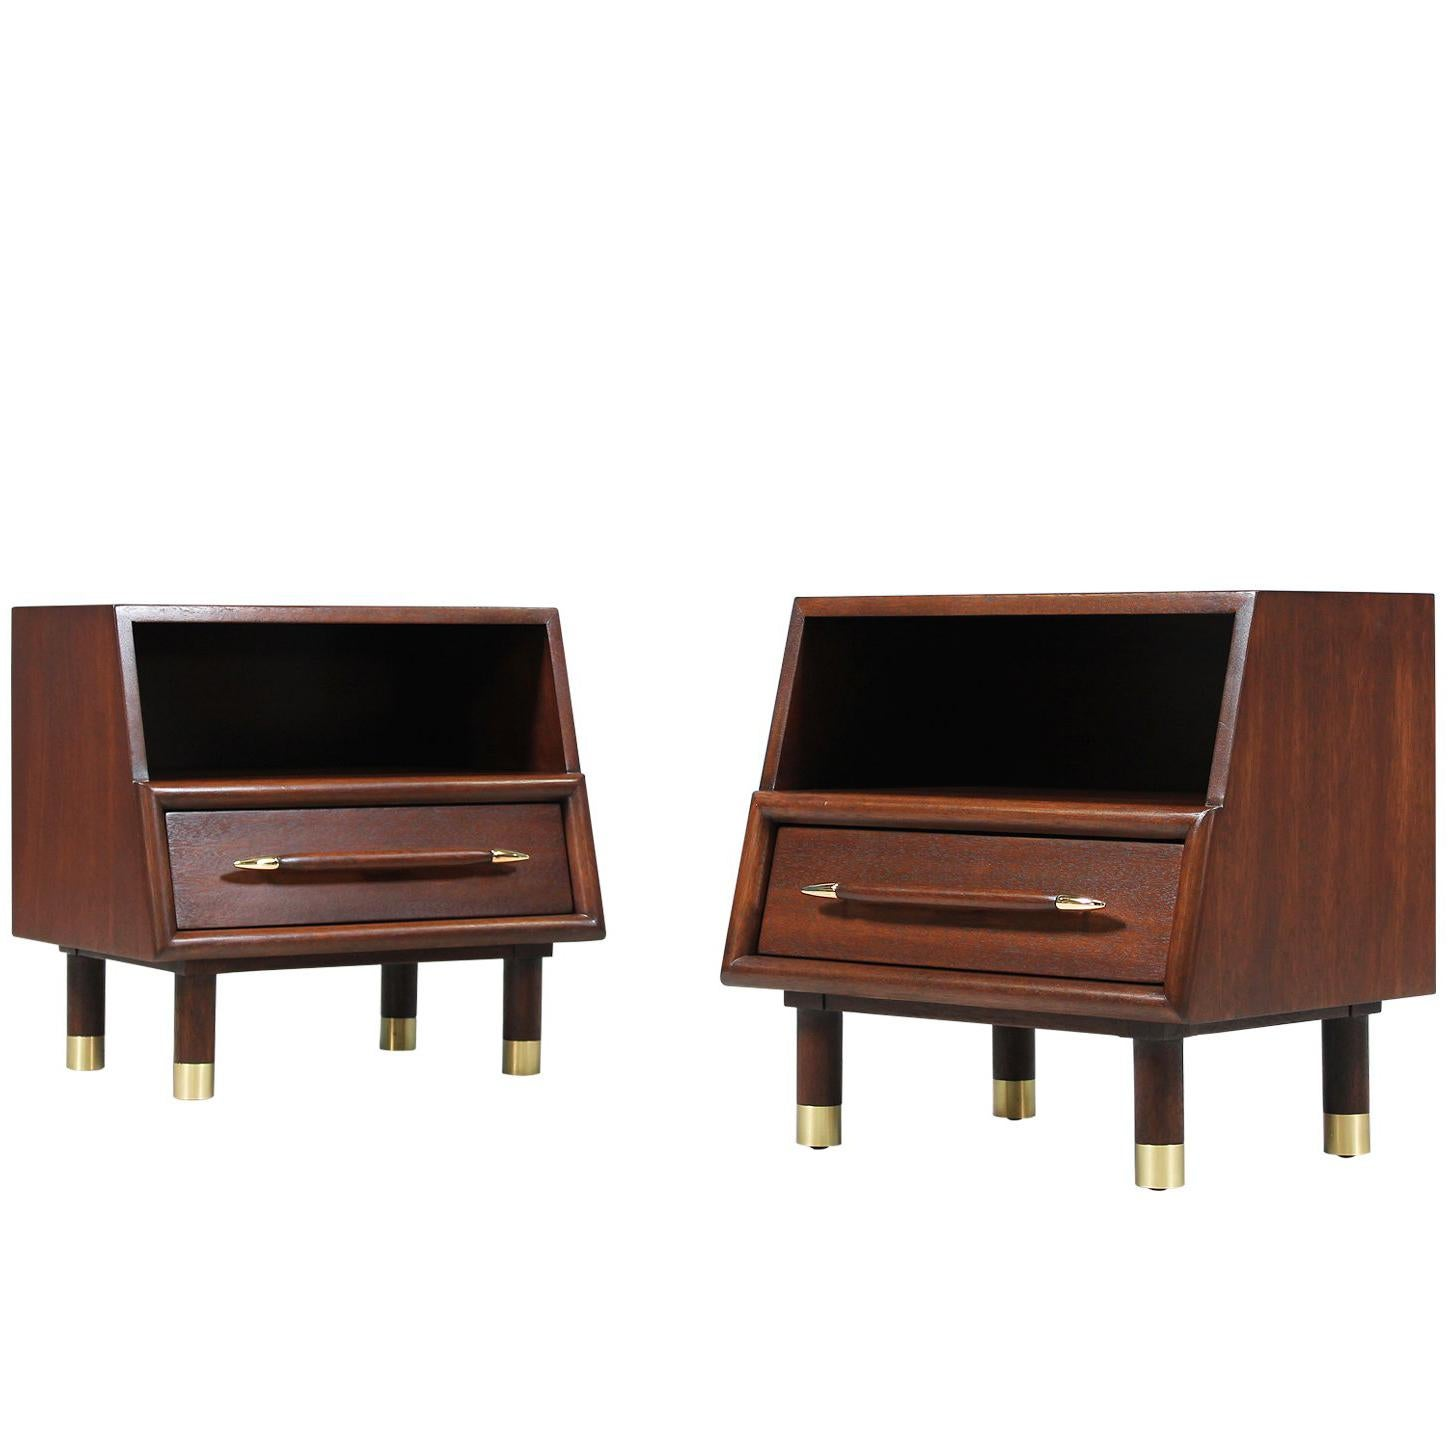 Superieur John Keal Nightstands For Brown Saltman